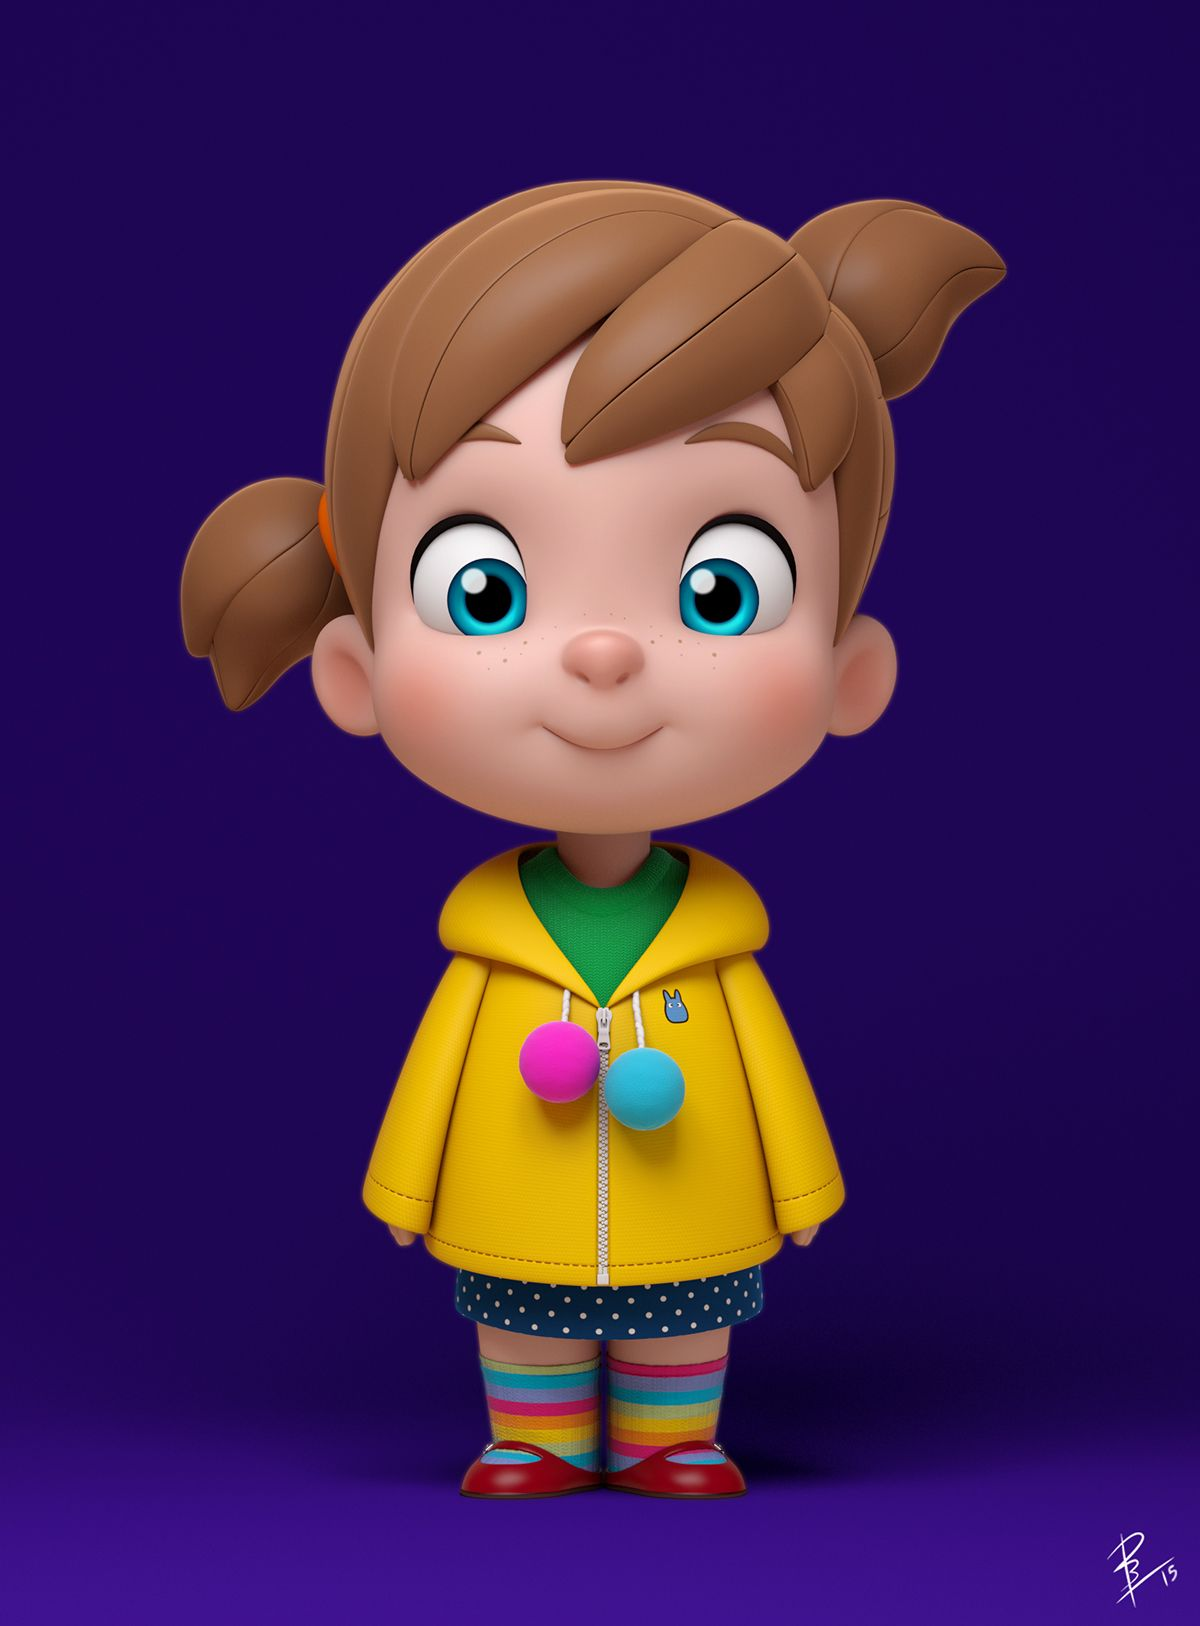 Character Model Based On A Design By Anderson Mahansky